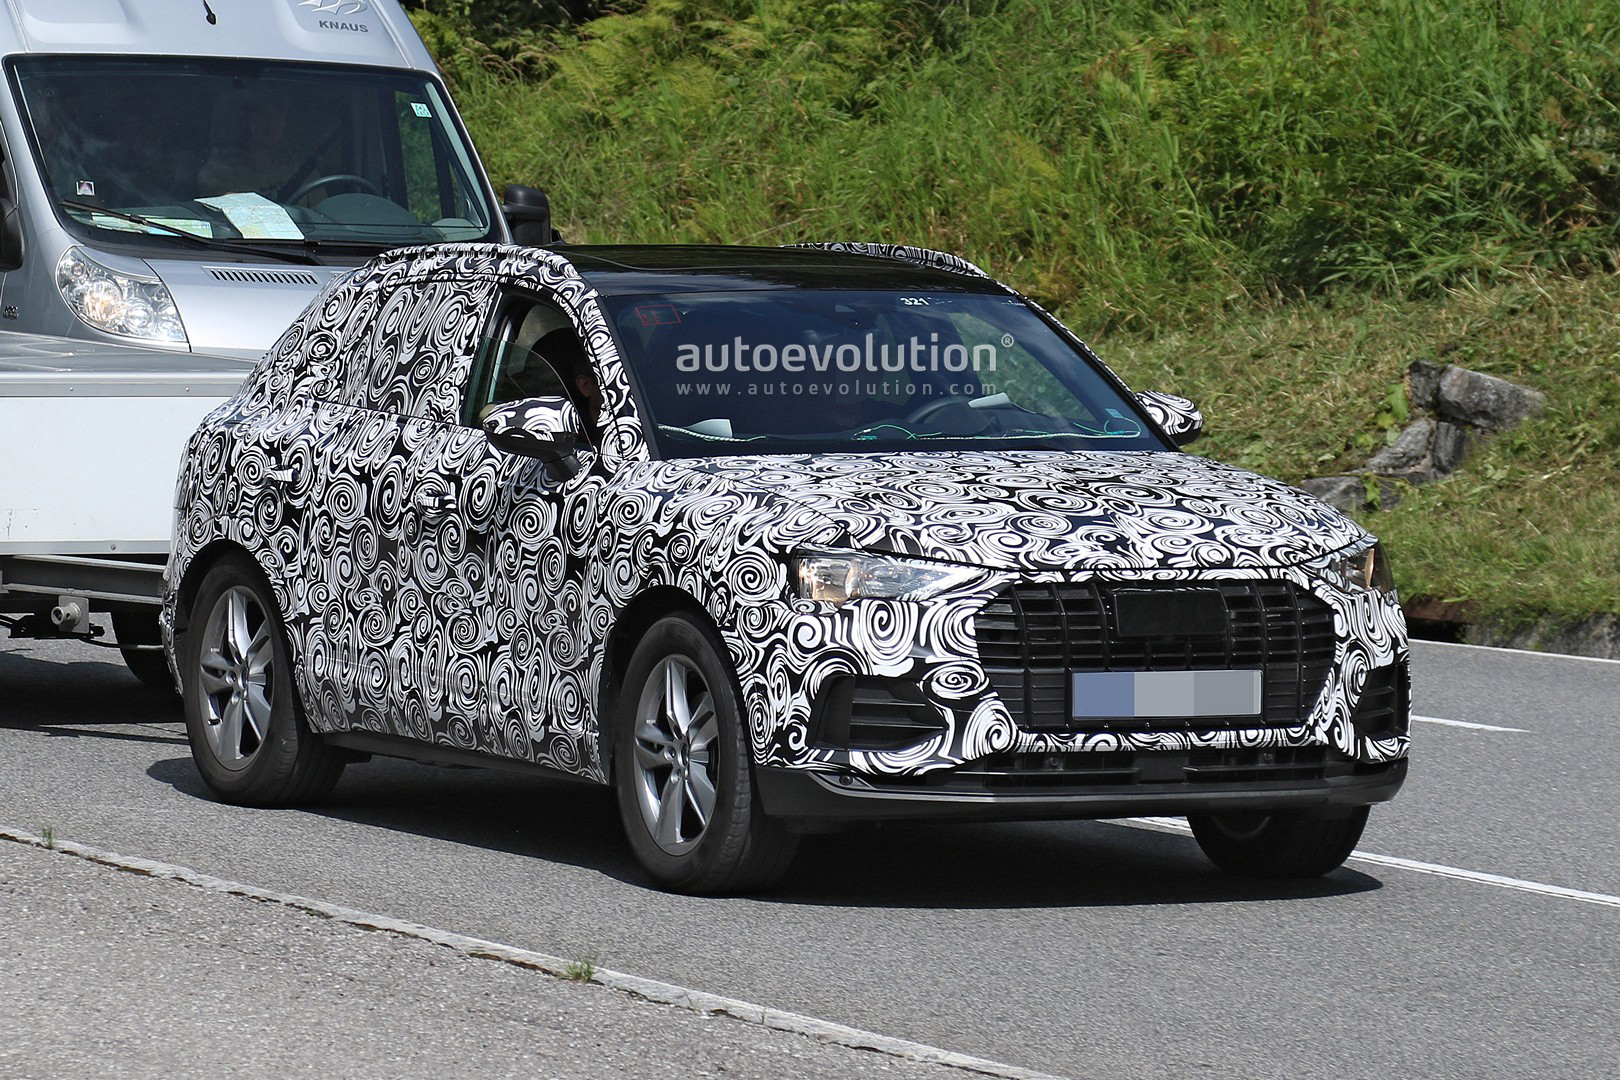 Spyshots 2019 Audi Q3 Caught Alpine Testing Shows Sporty